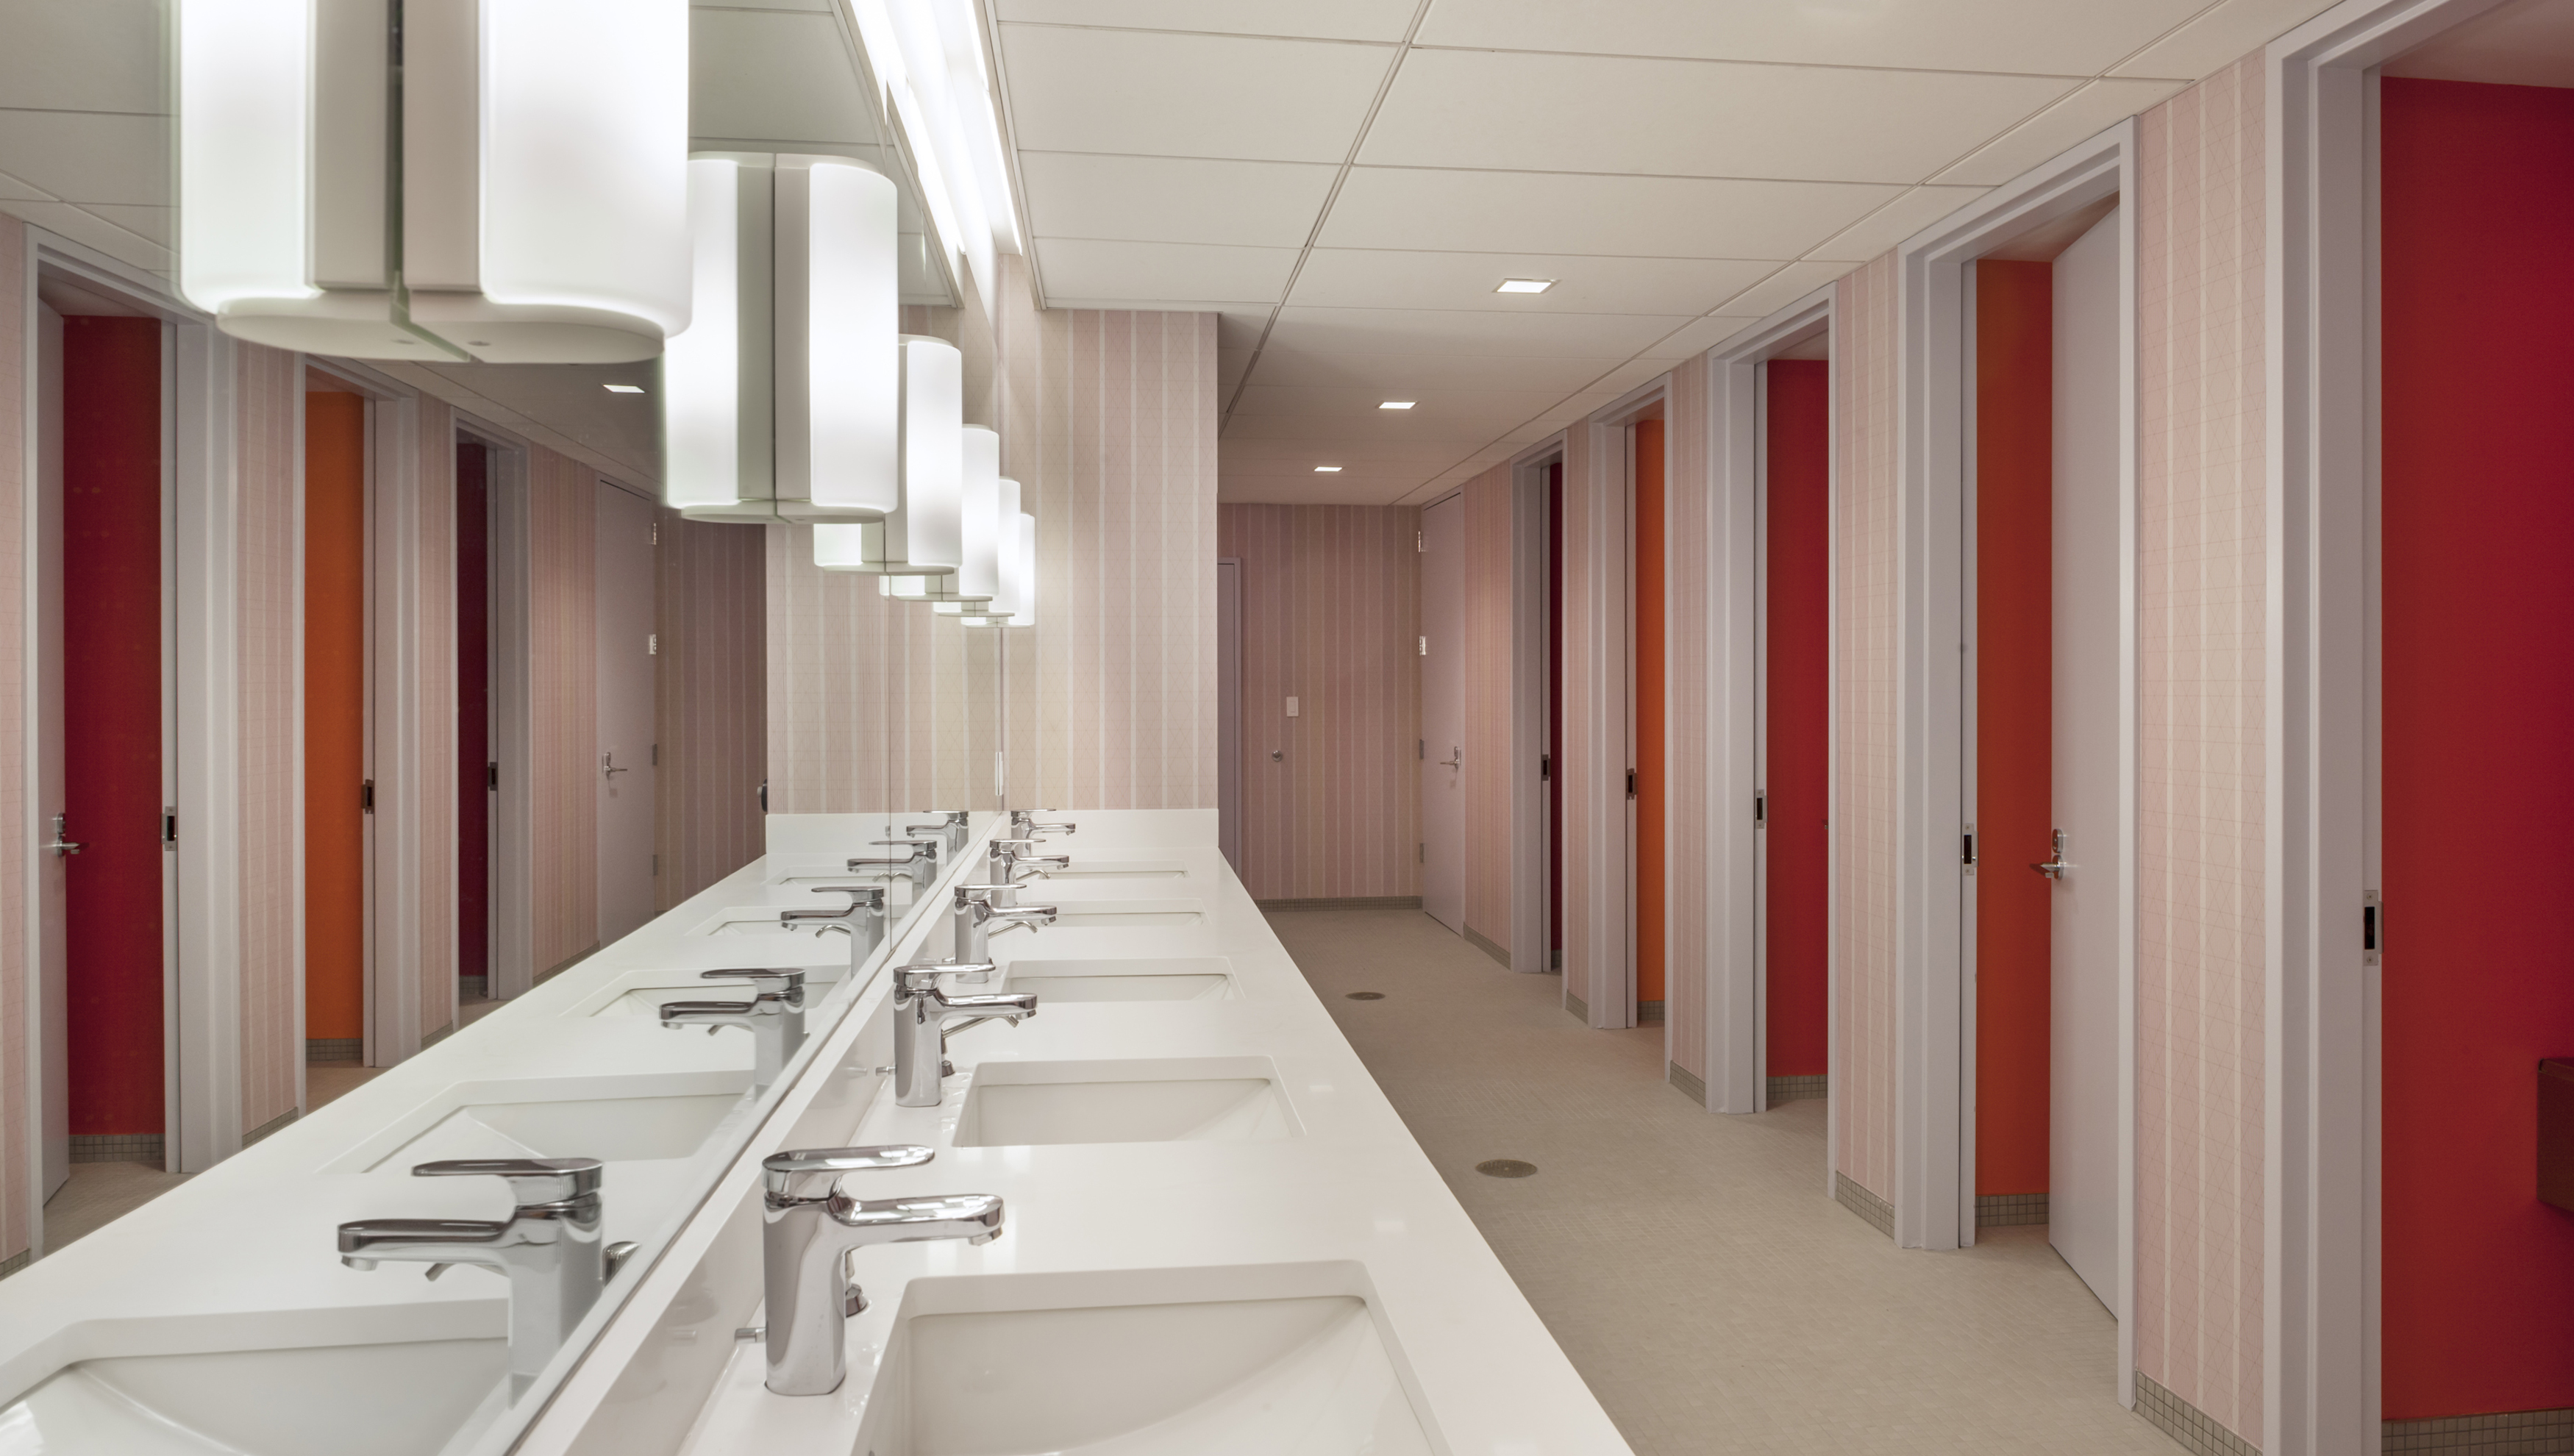 How To Design Transgender Friendly Bathrooms That Make People Of All Genders Feel Safe Quartz